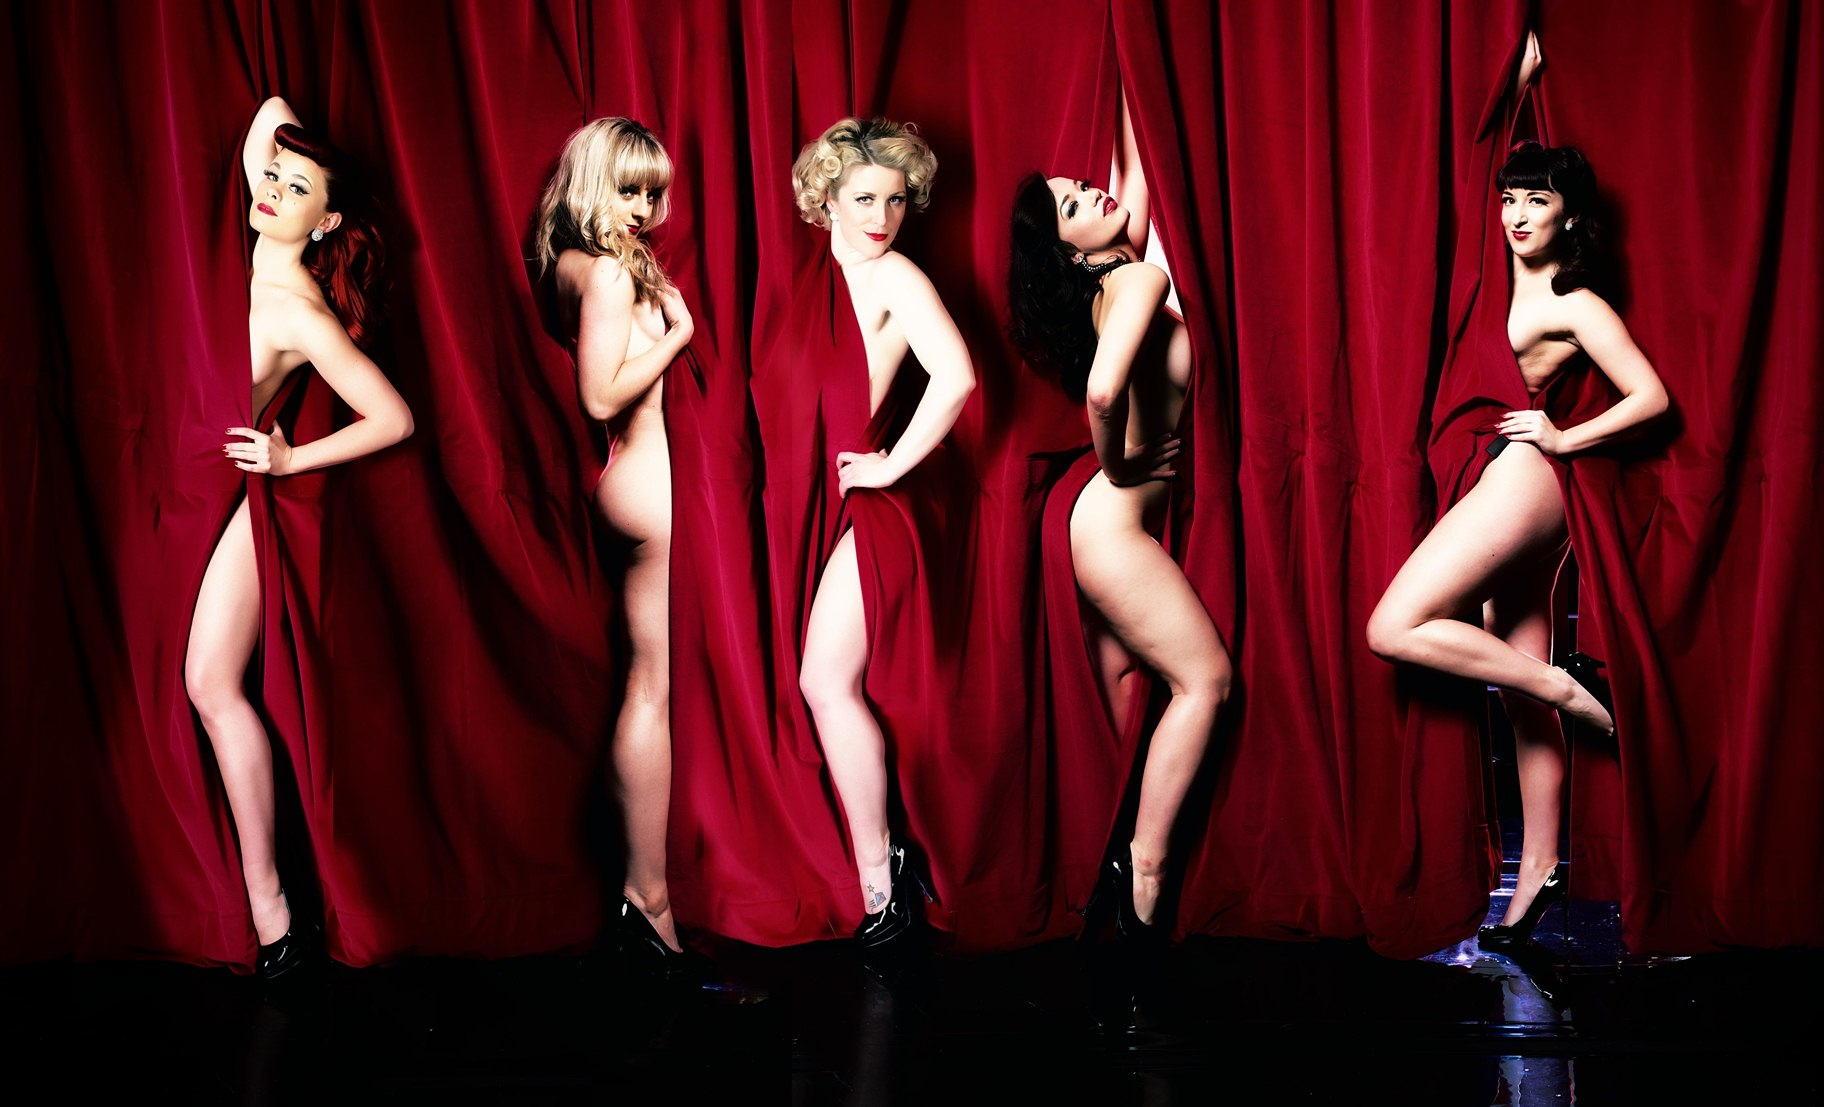 The Hottest Burlesque Performances